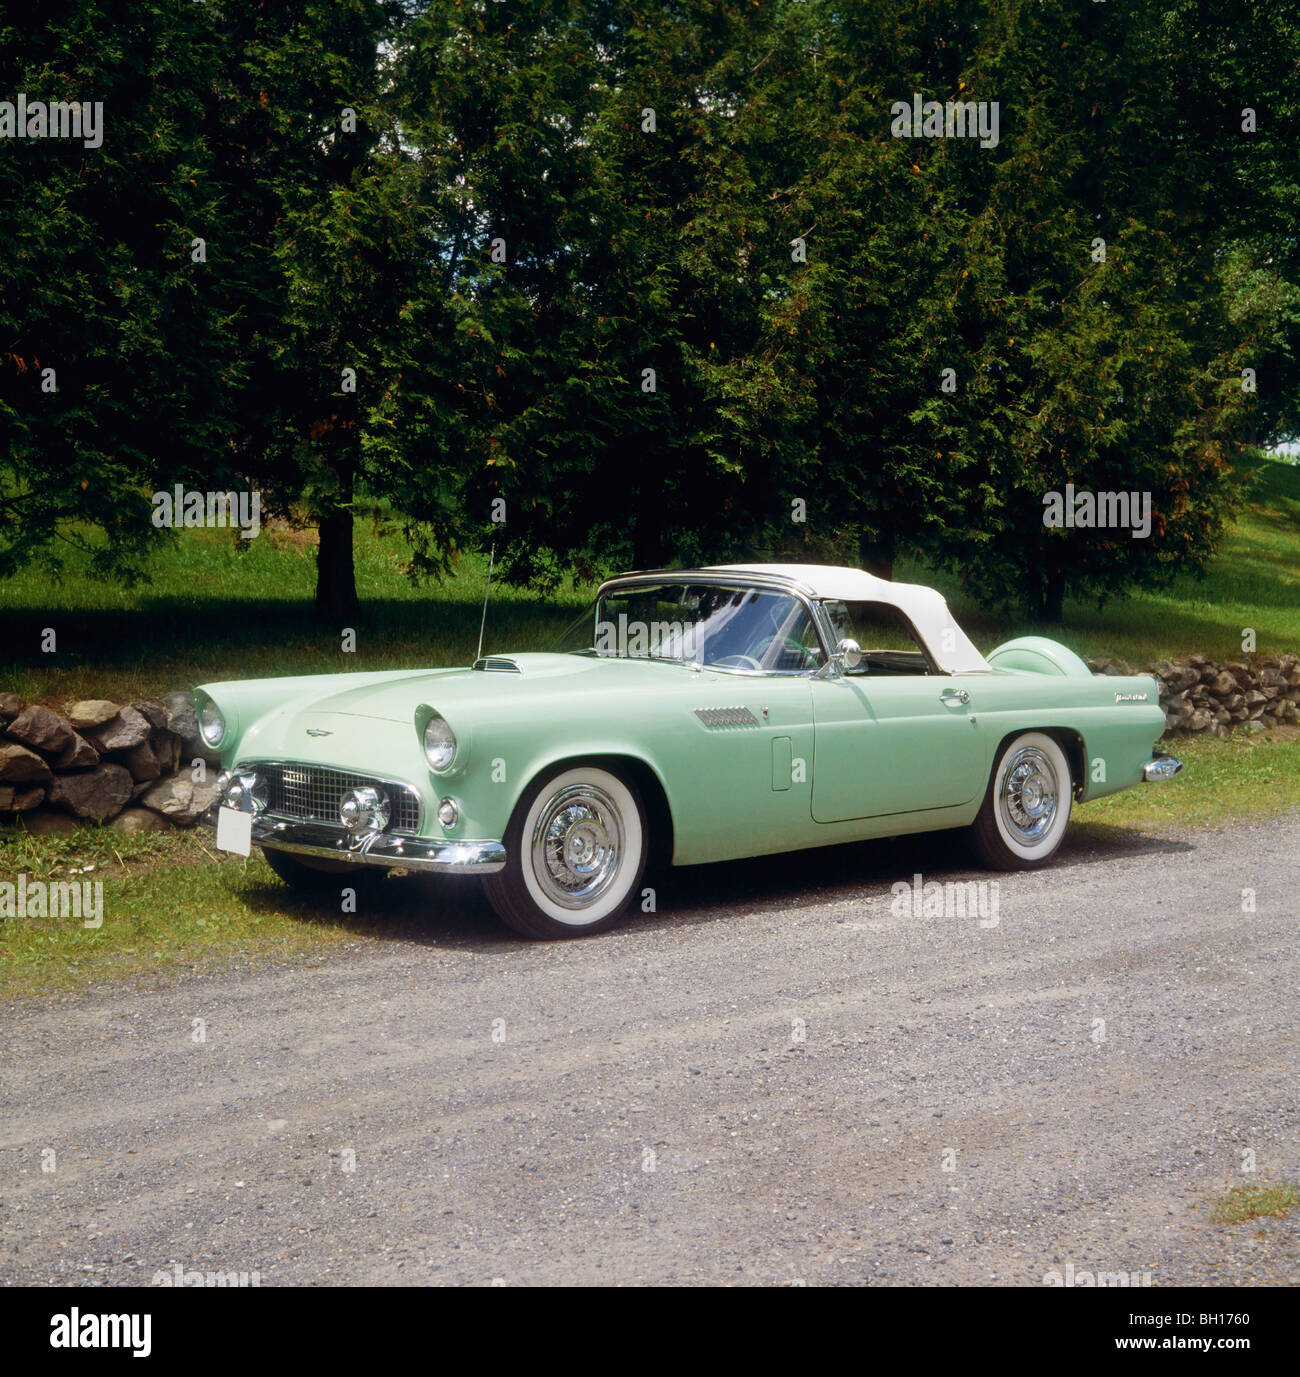 Vintage 1956 Ford Thunderbird car, Waterloo, Quebec, Ontario Stock Photo